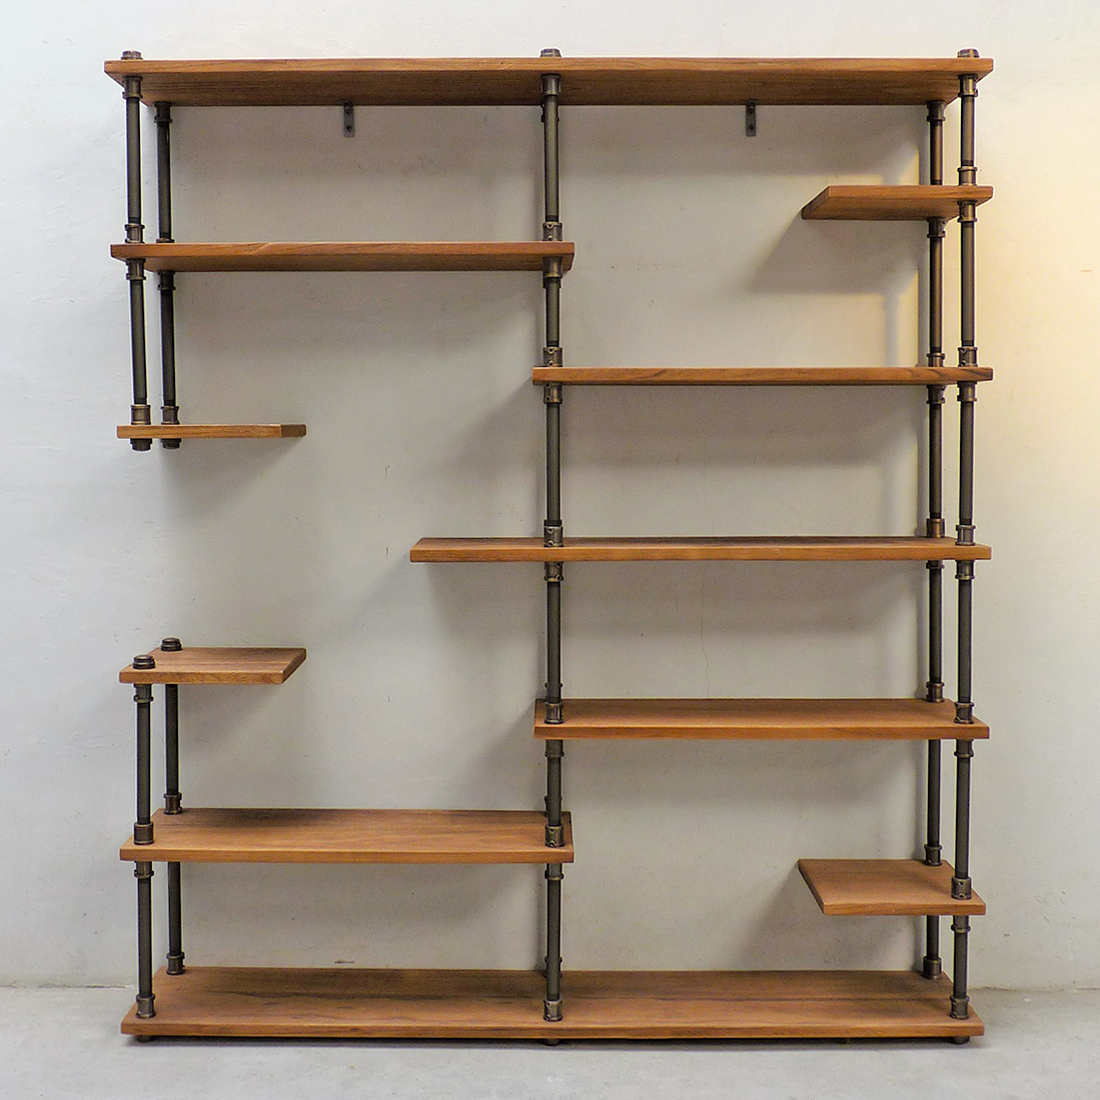 Preferred Ermont Etagere Bookcases Pertaining To Etagere Bookcase (Gallery 18 of 20)